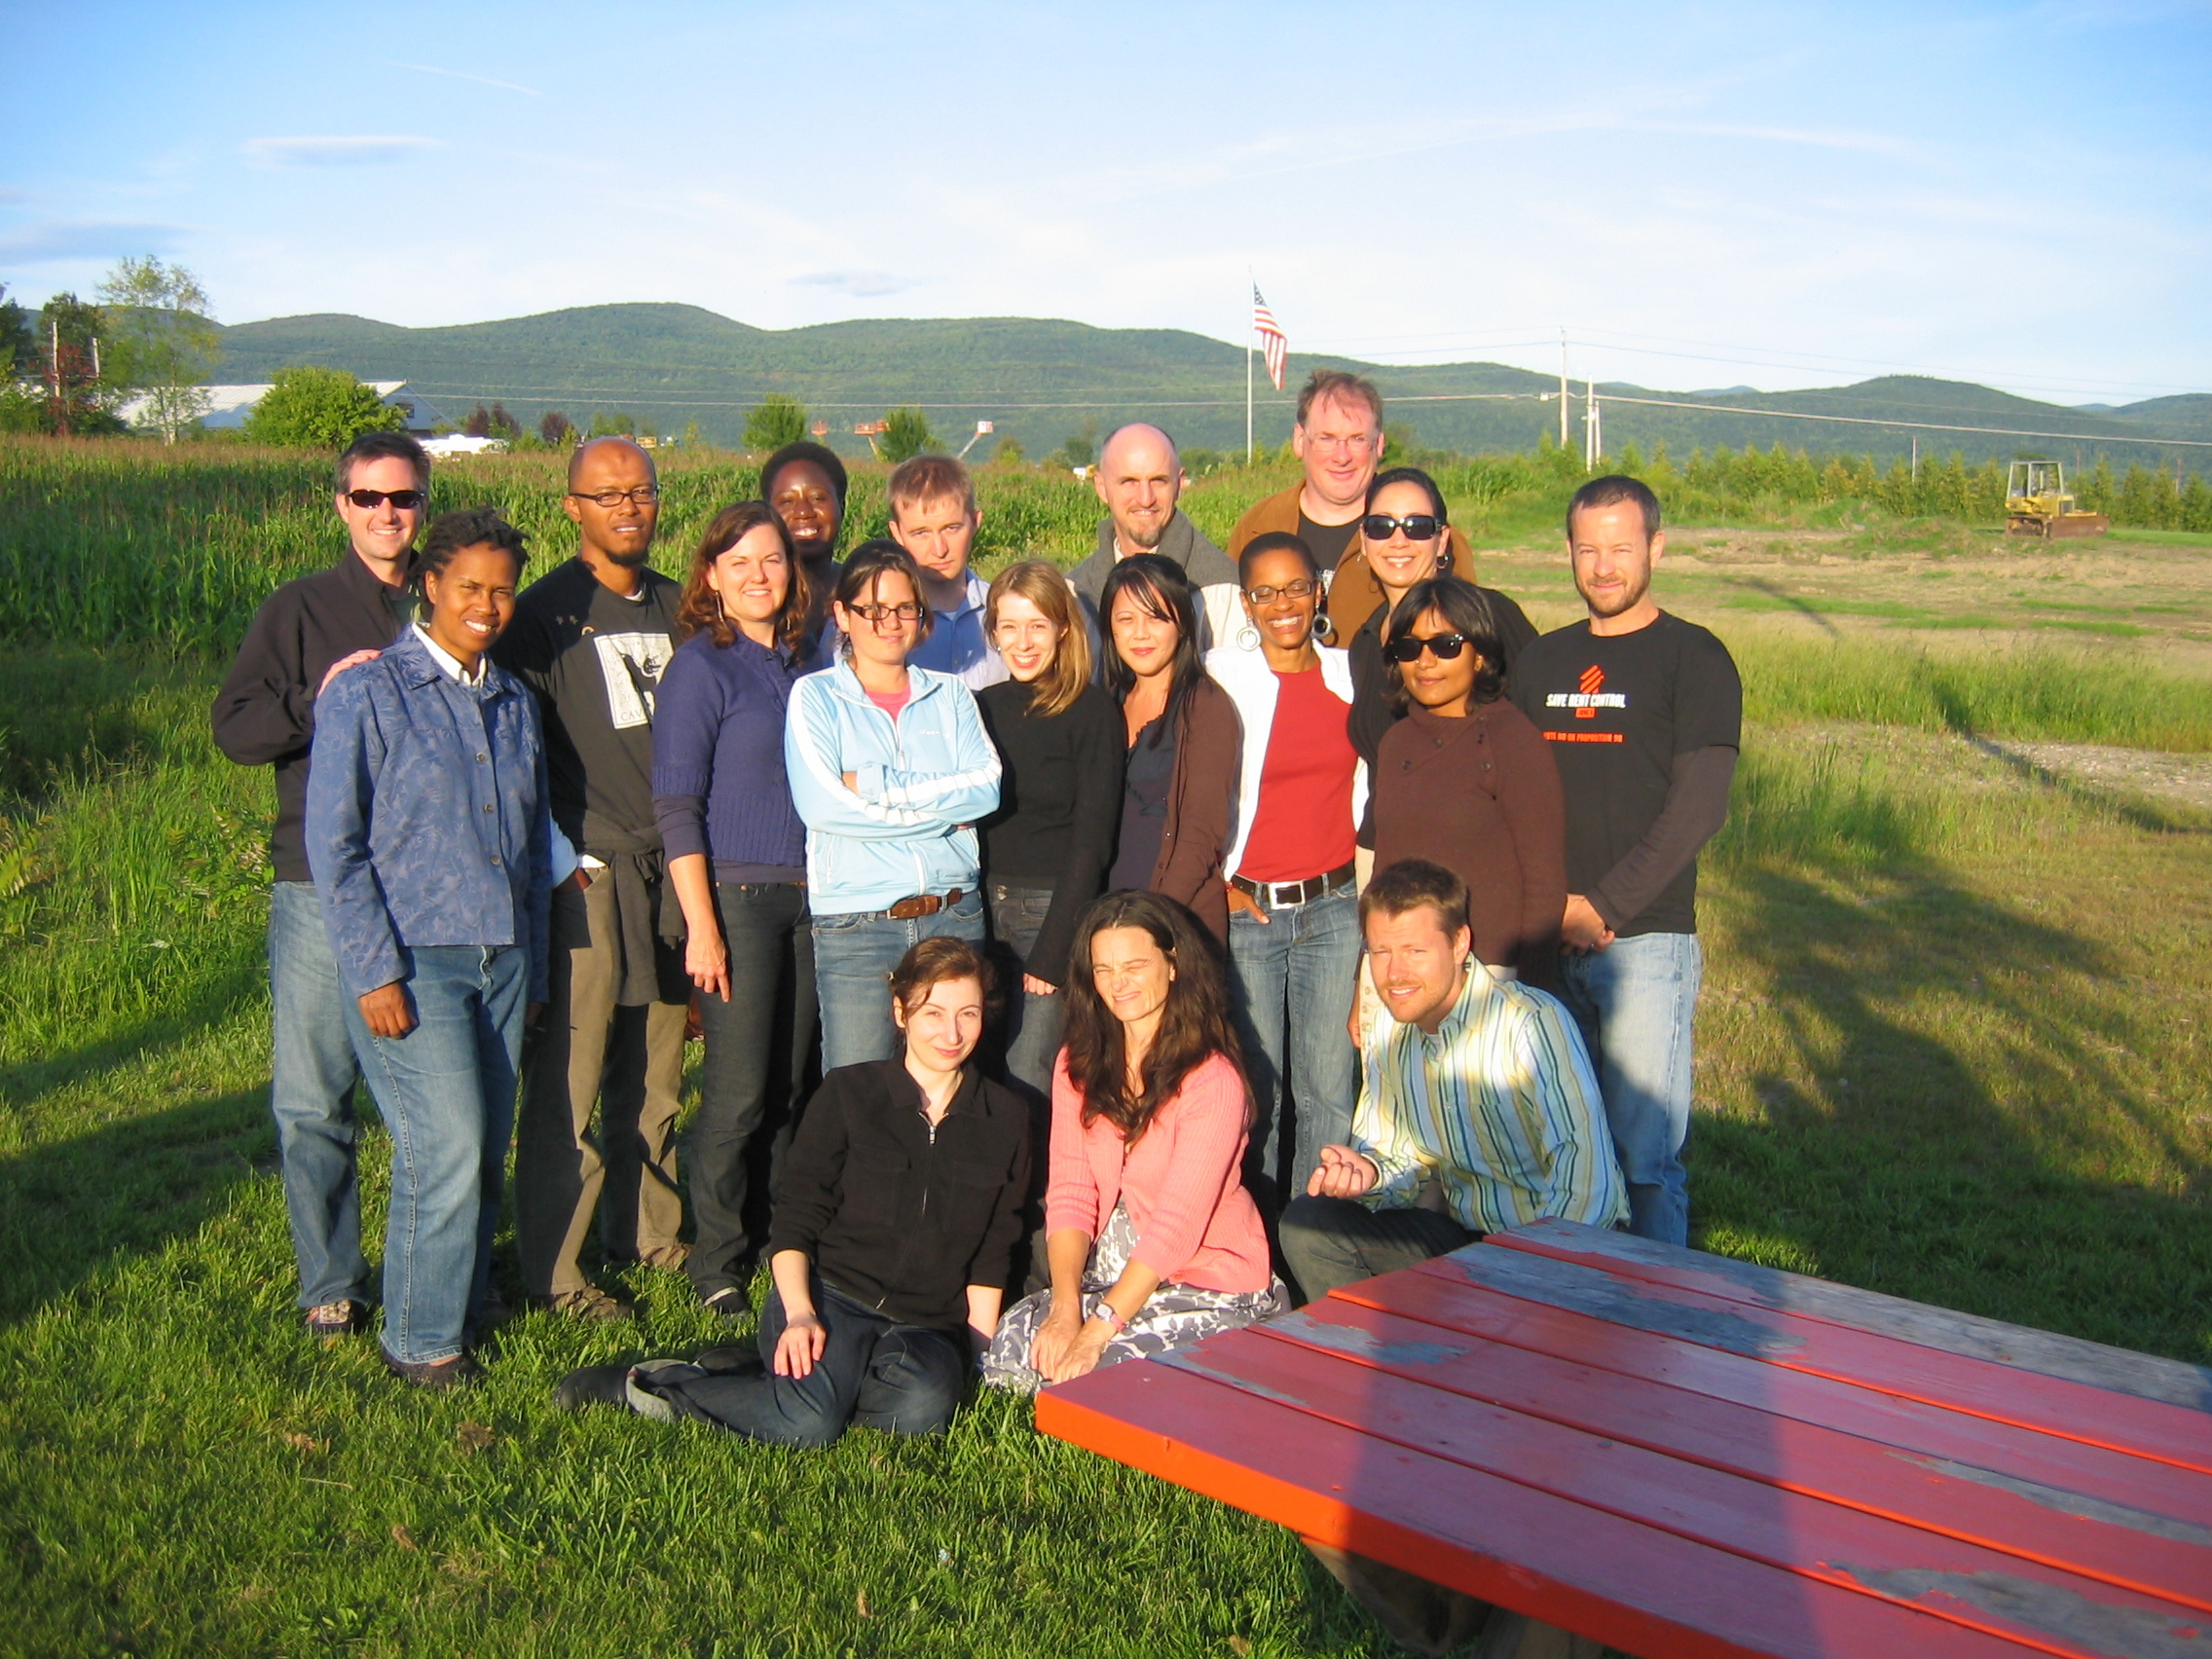 The 2008 Fellows